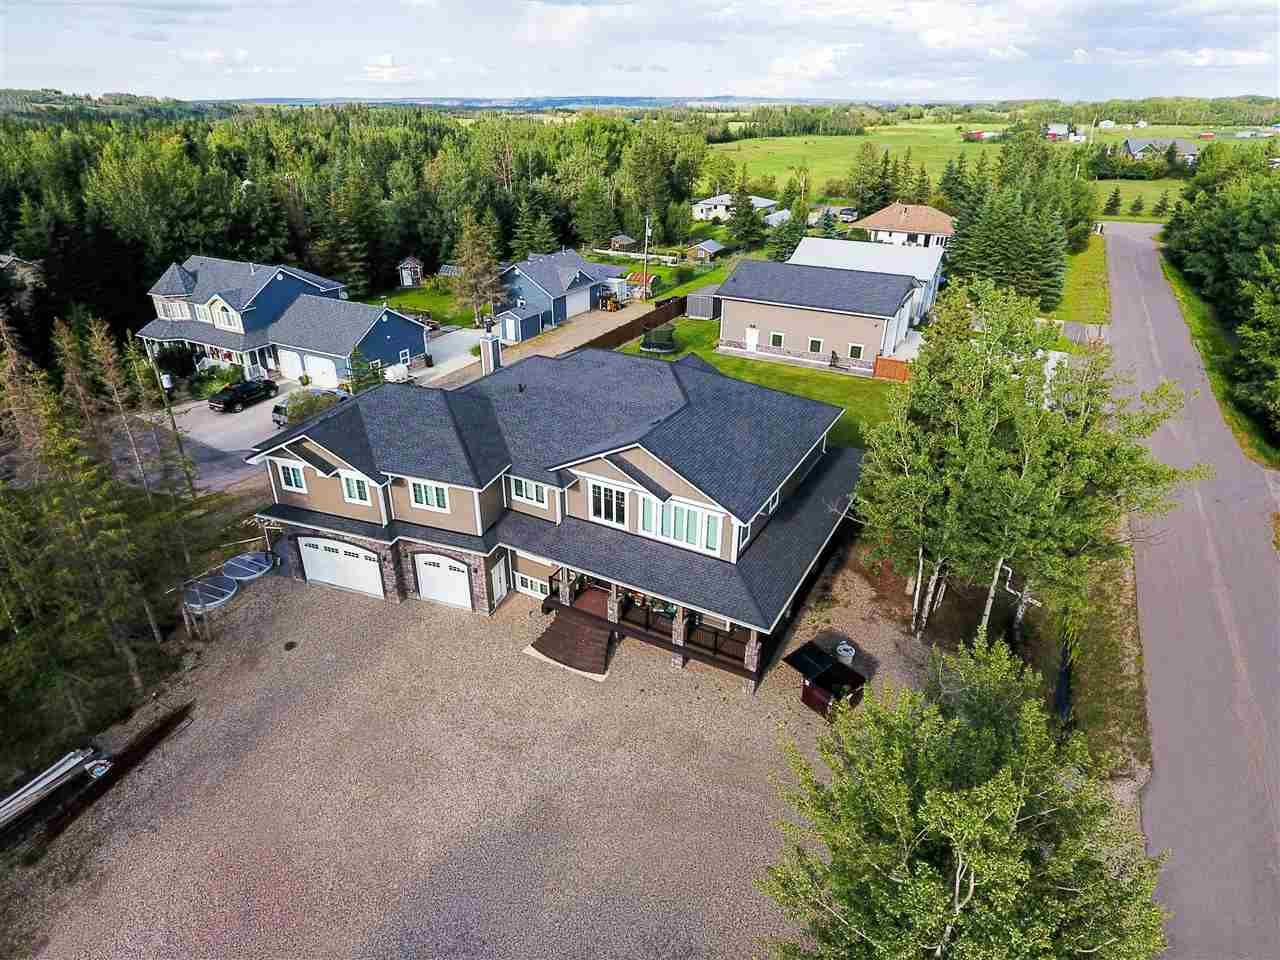 Main Photo: 9704 121 AVENUE in : Fort St. John - Rural E 100th House for sale : MLS®# R2326067